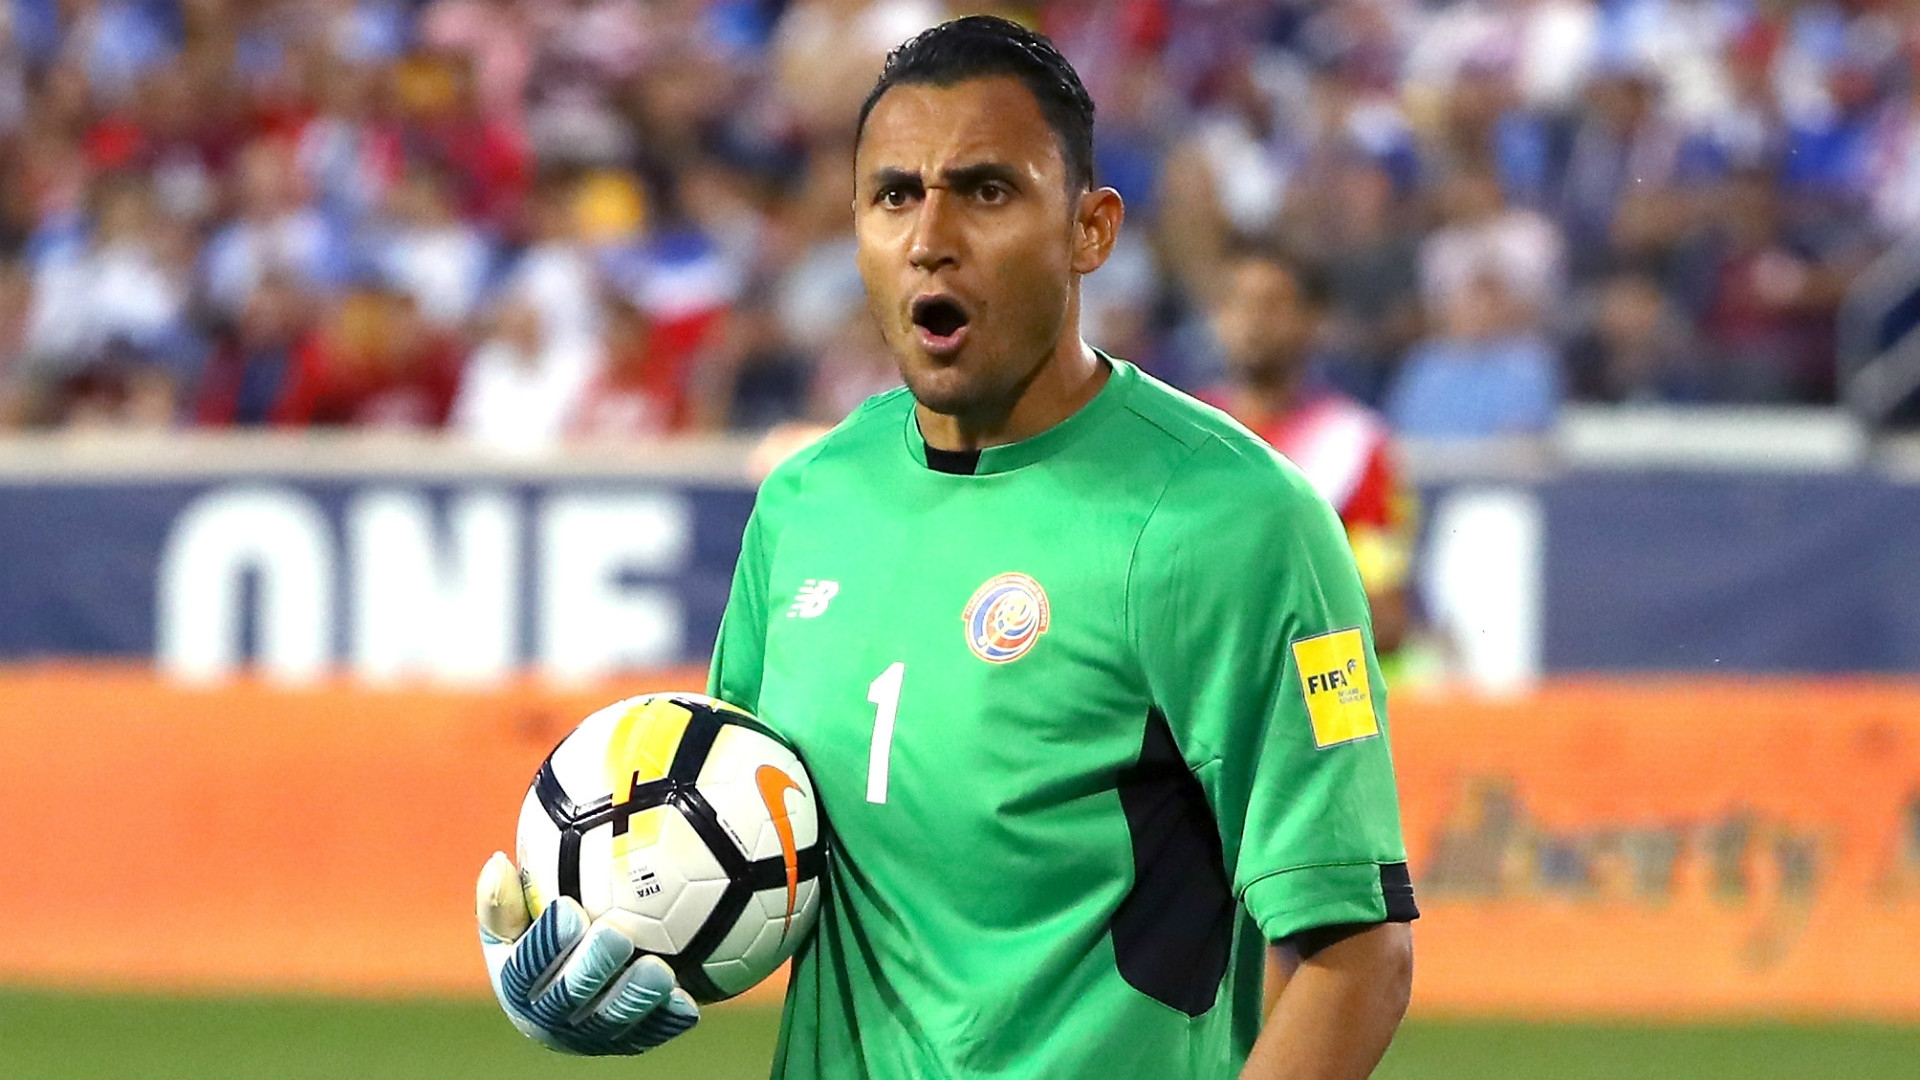 Keylor Navas - Costa Rica, Real Madrid